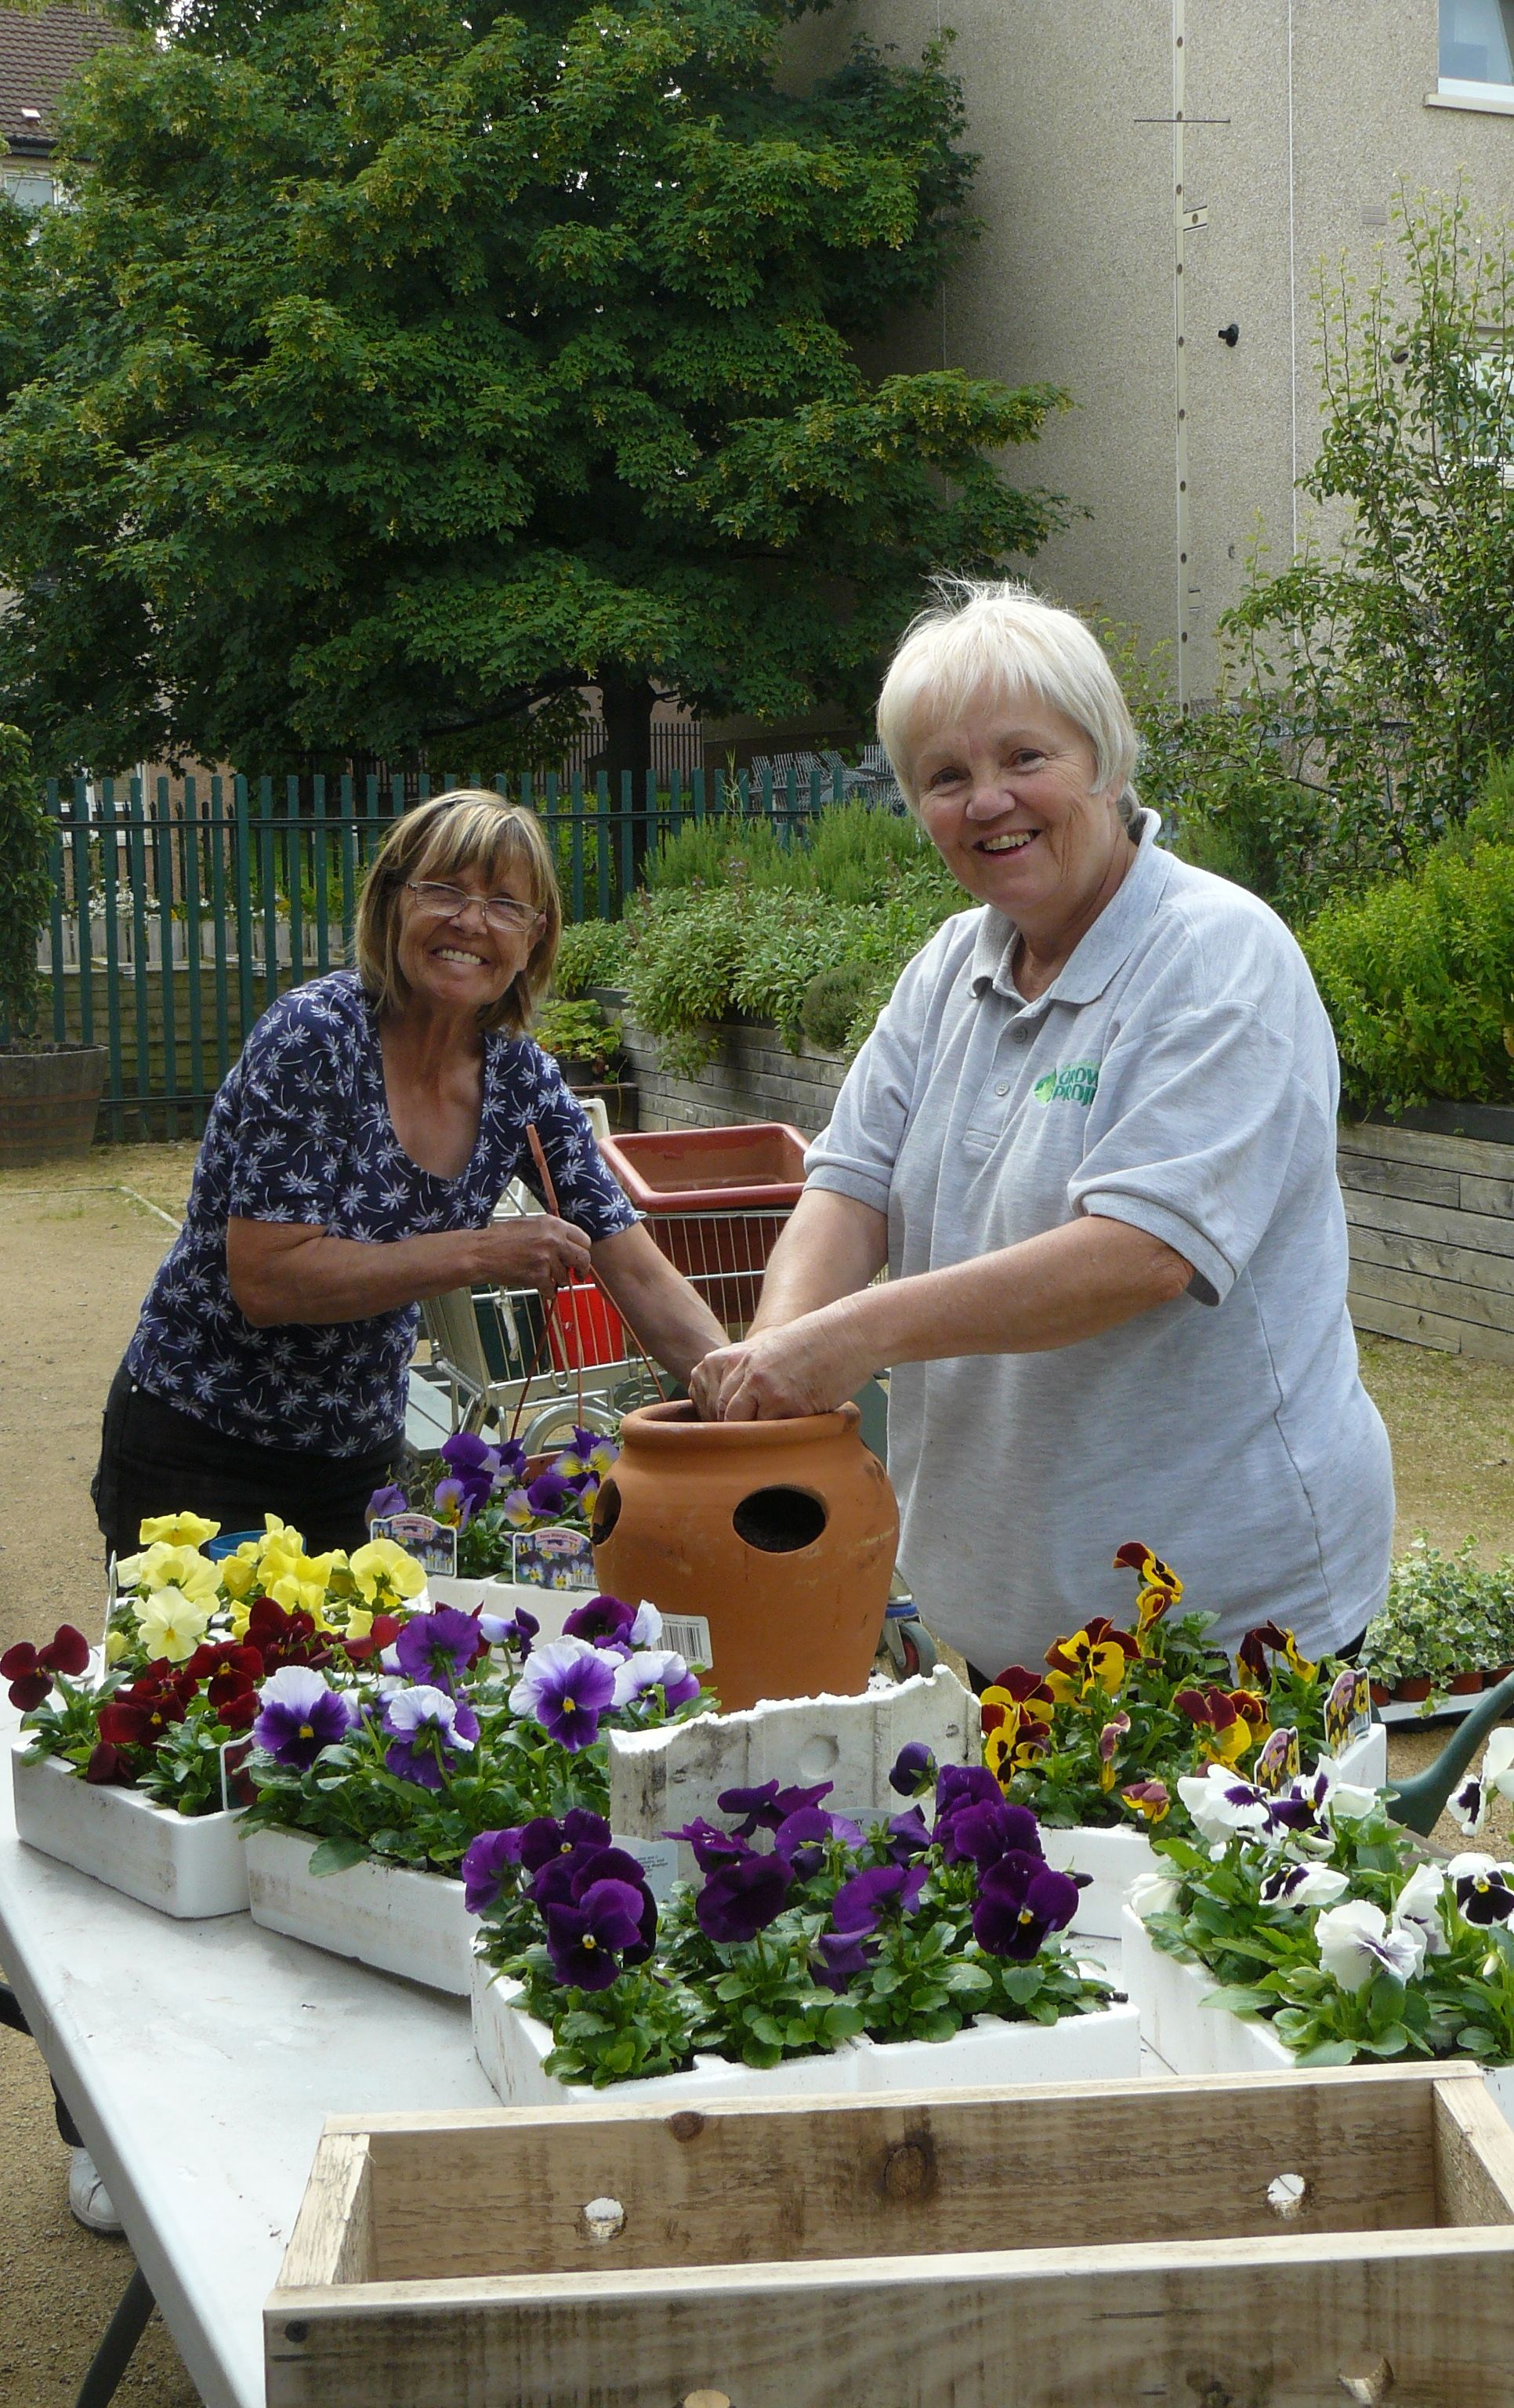 Marion and Margaret happy at work